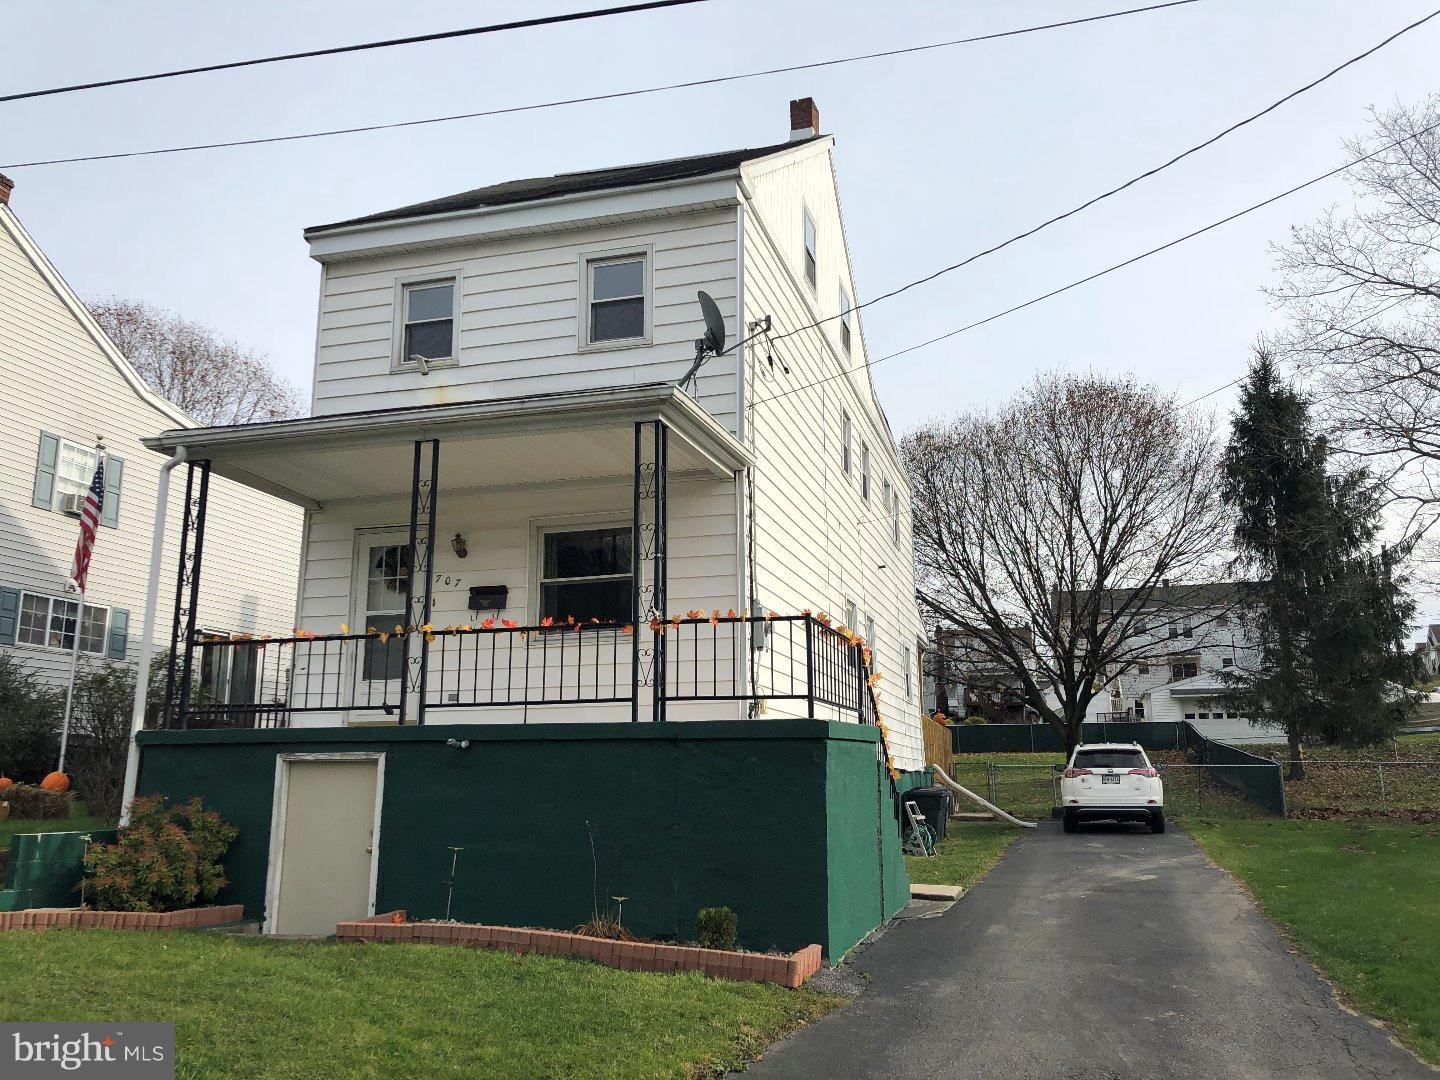 707 5TH STREET, PORT CARBON, PA 17965